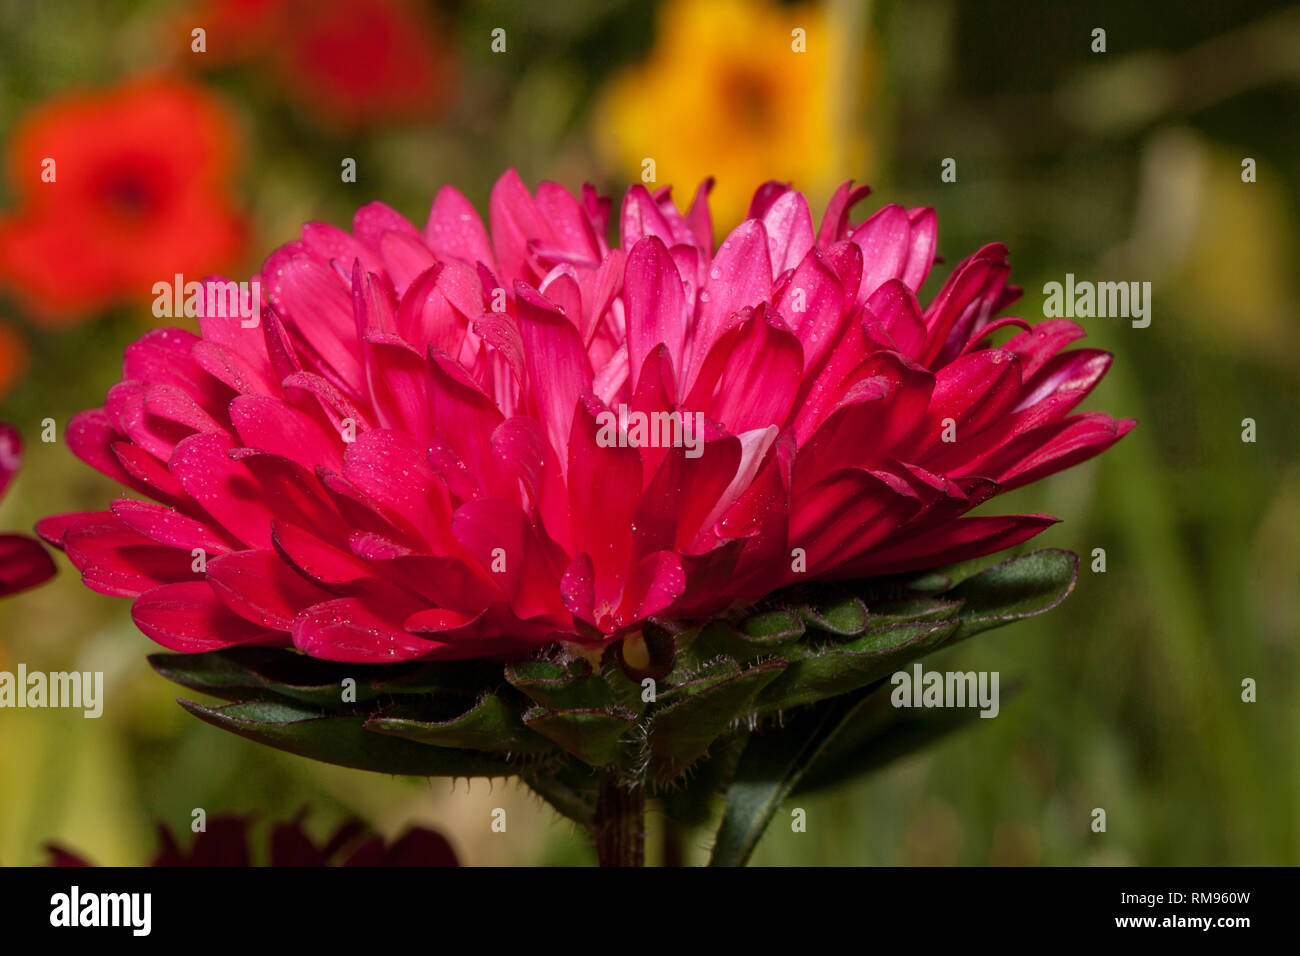 Beautiful callistephus is growing in the spring garden. Callistephus chinensis or china aster. Live nature. - Stock Image